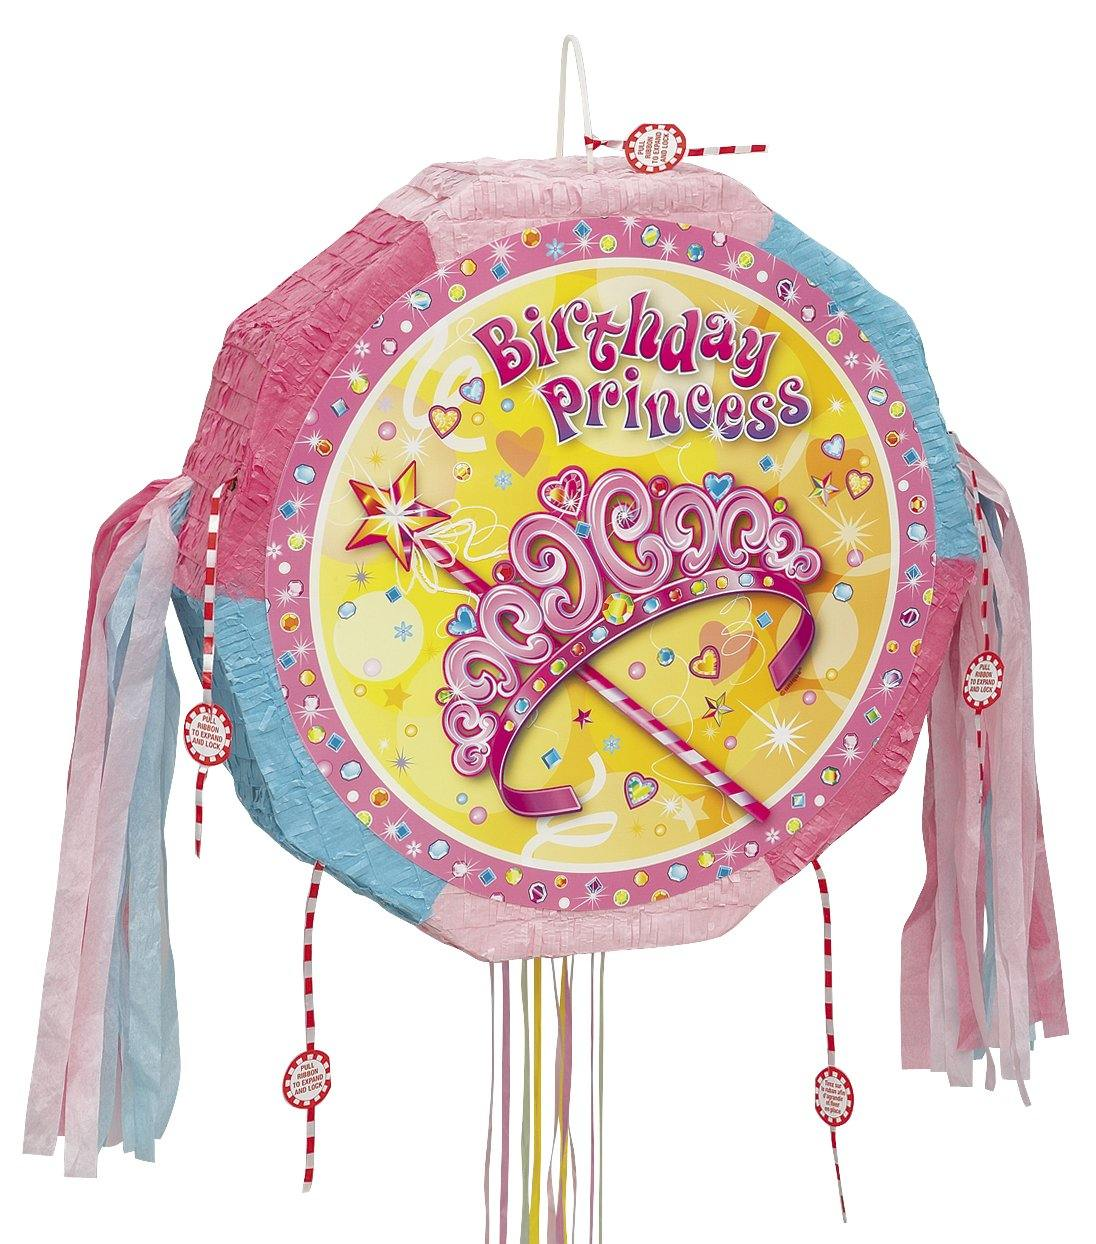 Pinata Pretty Princess Pop-Out - 45.7cm H x 48.3cm W